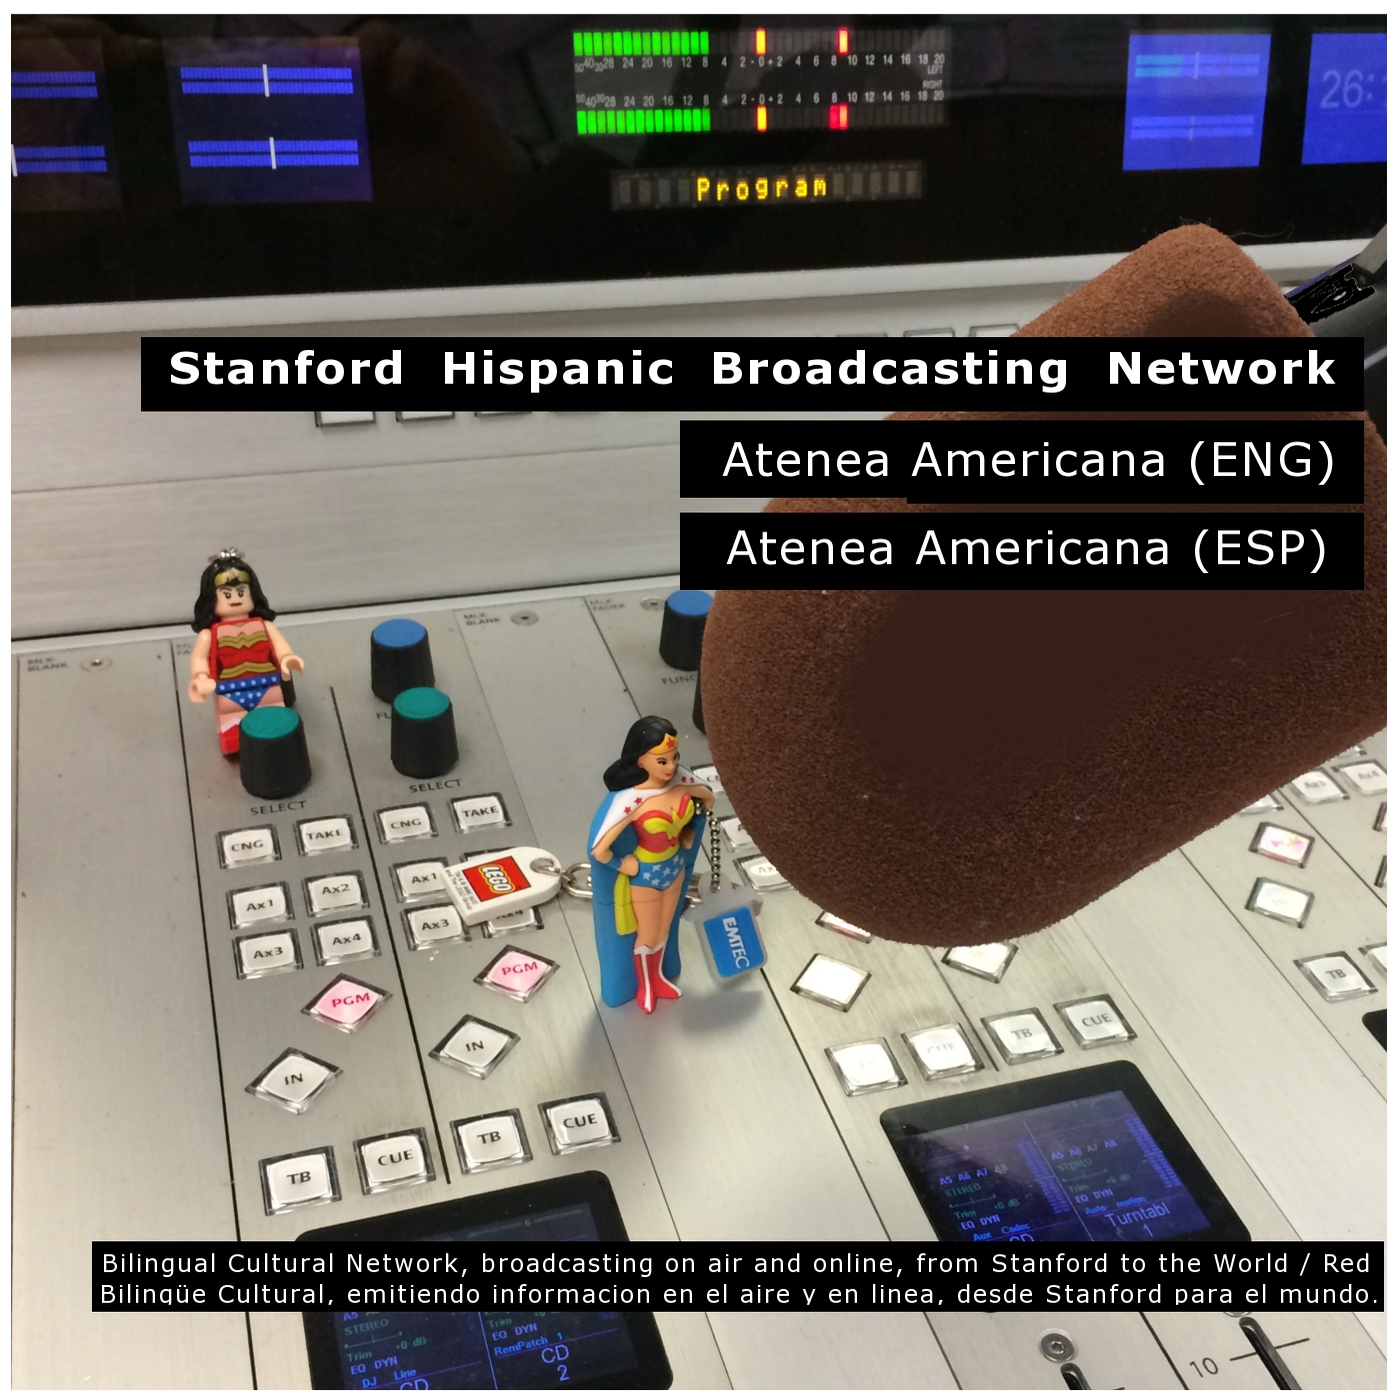 Stanford Hispanic Broadcasting